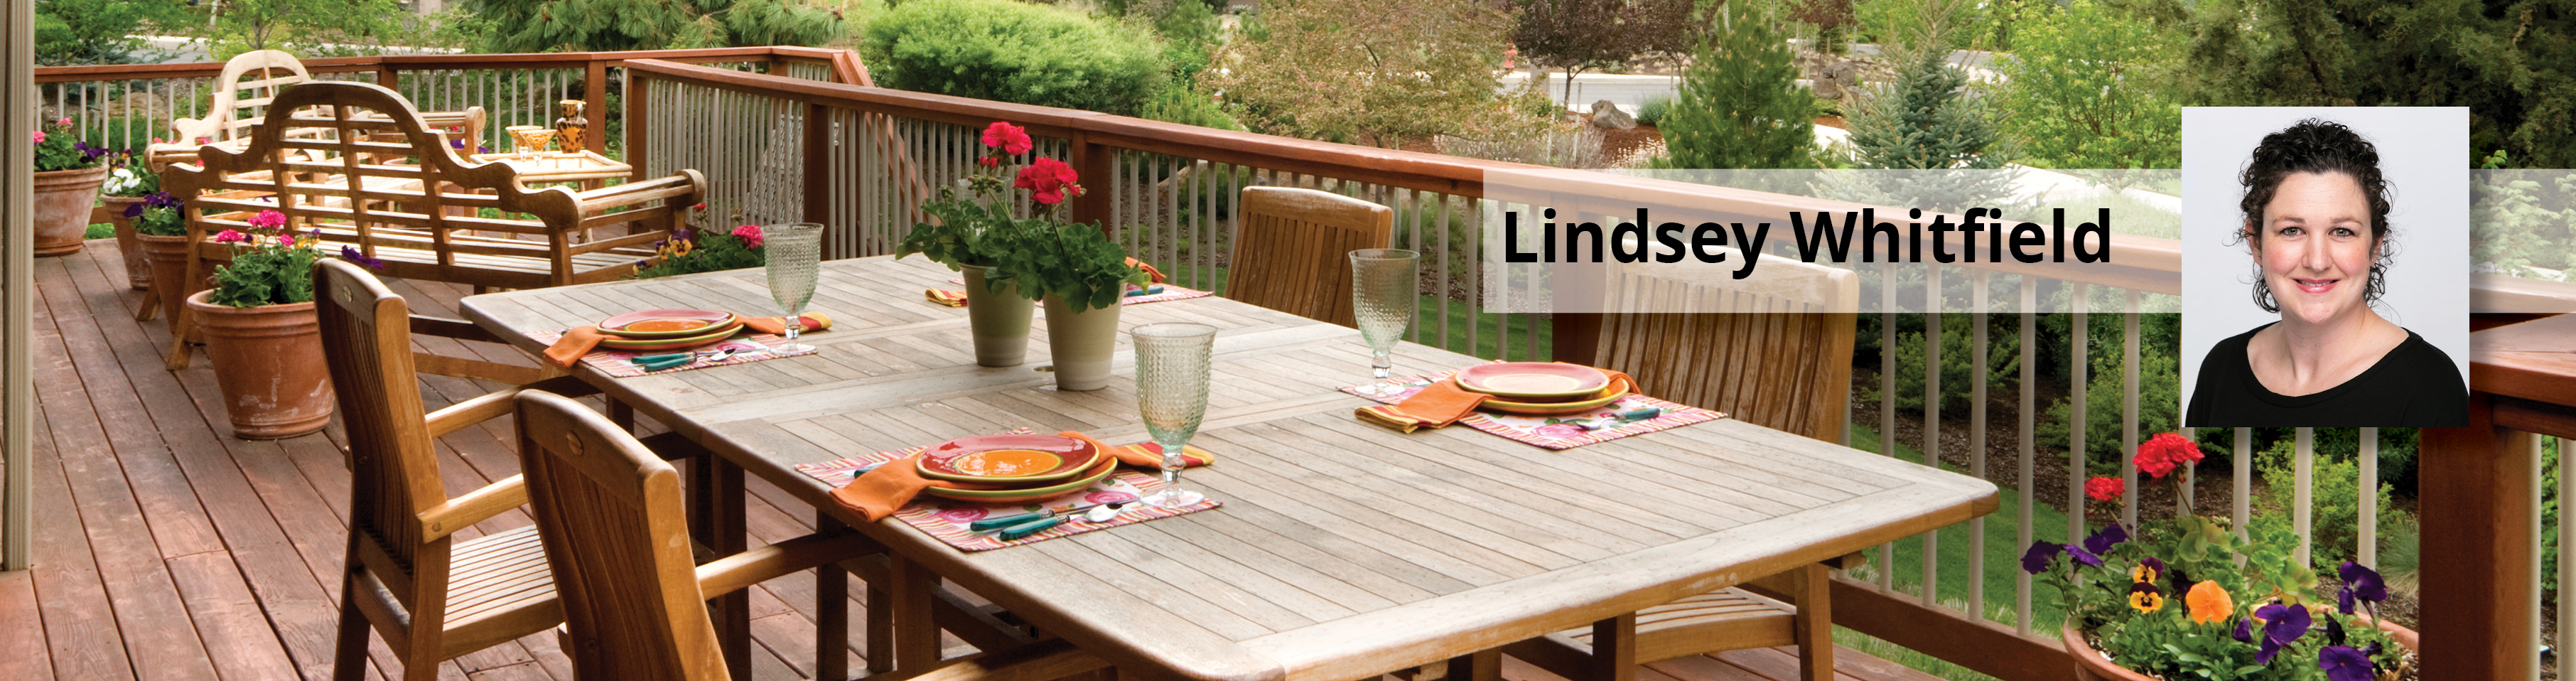 Lindsey Whitfield Photo Banner